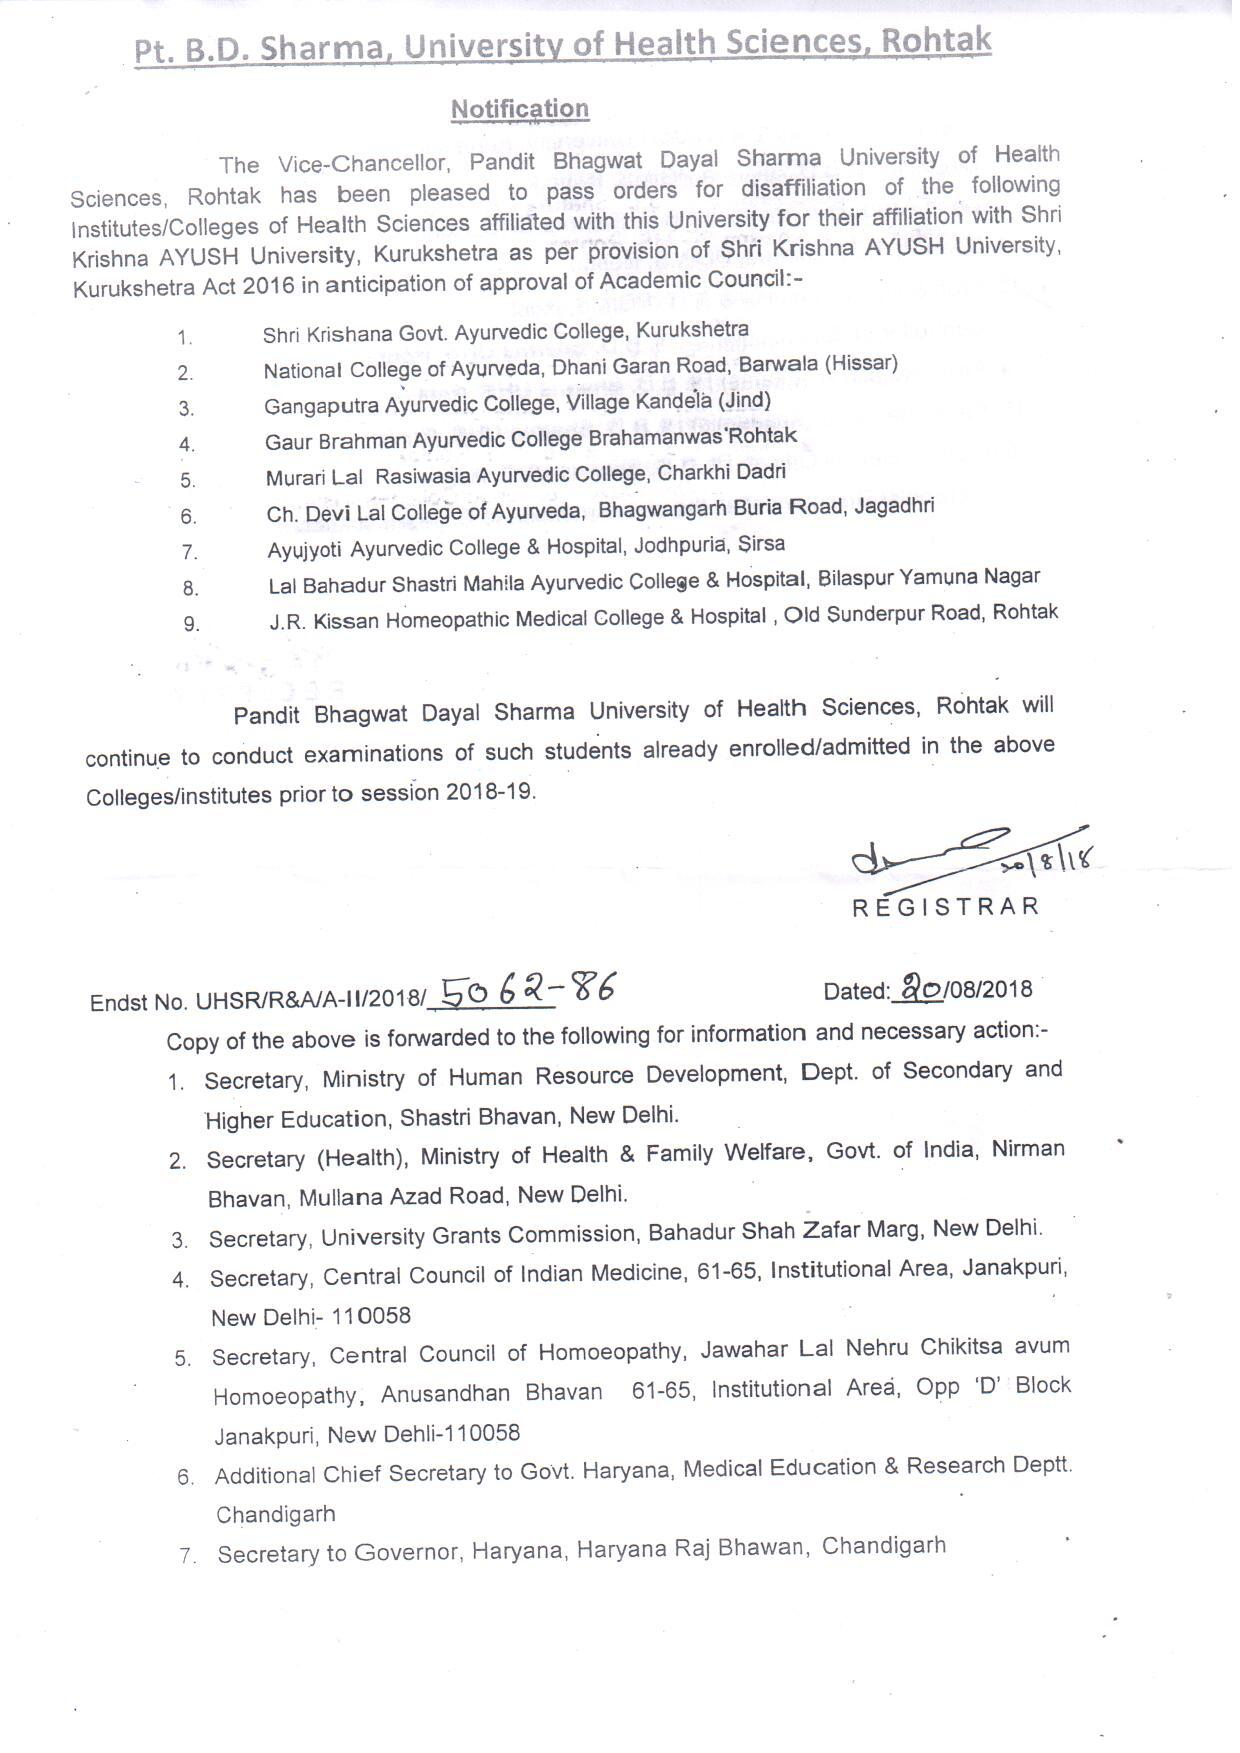 notification for ayurvedic colleges affiliated with university of health sciences rohtak